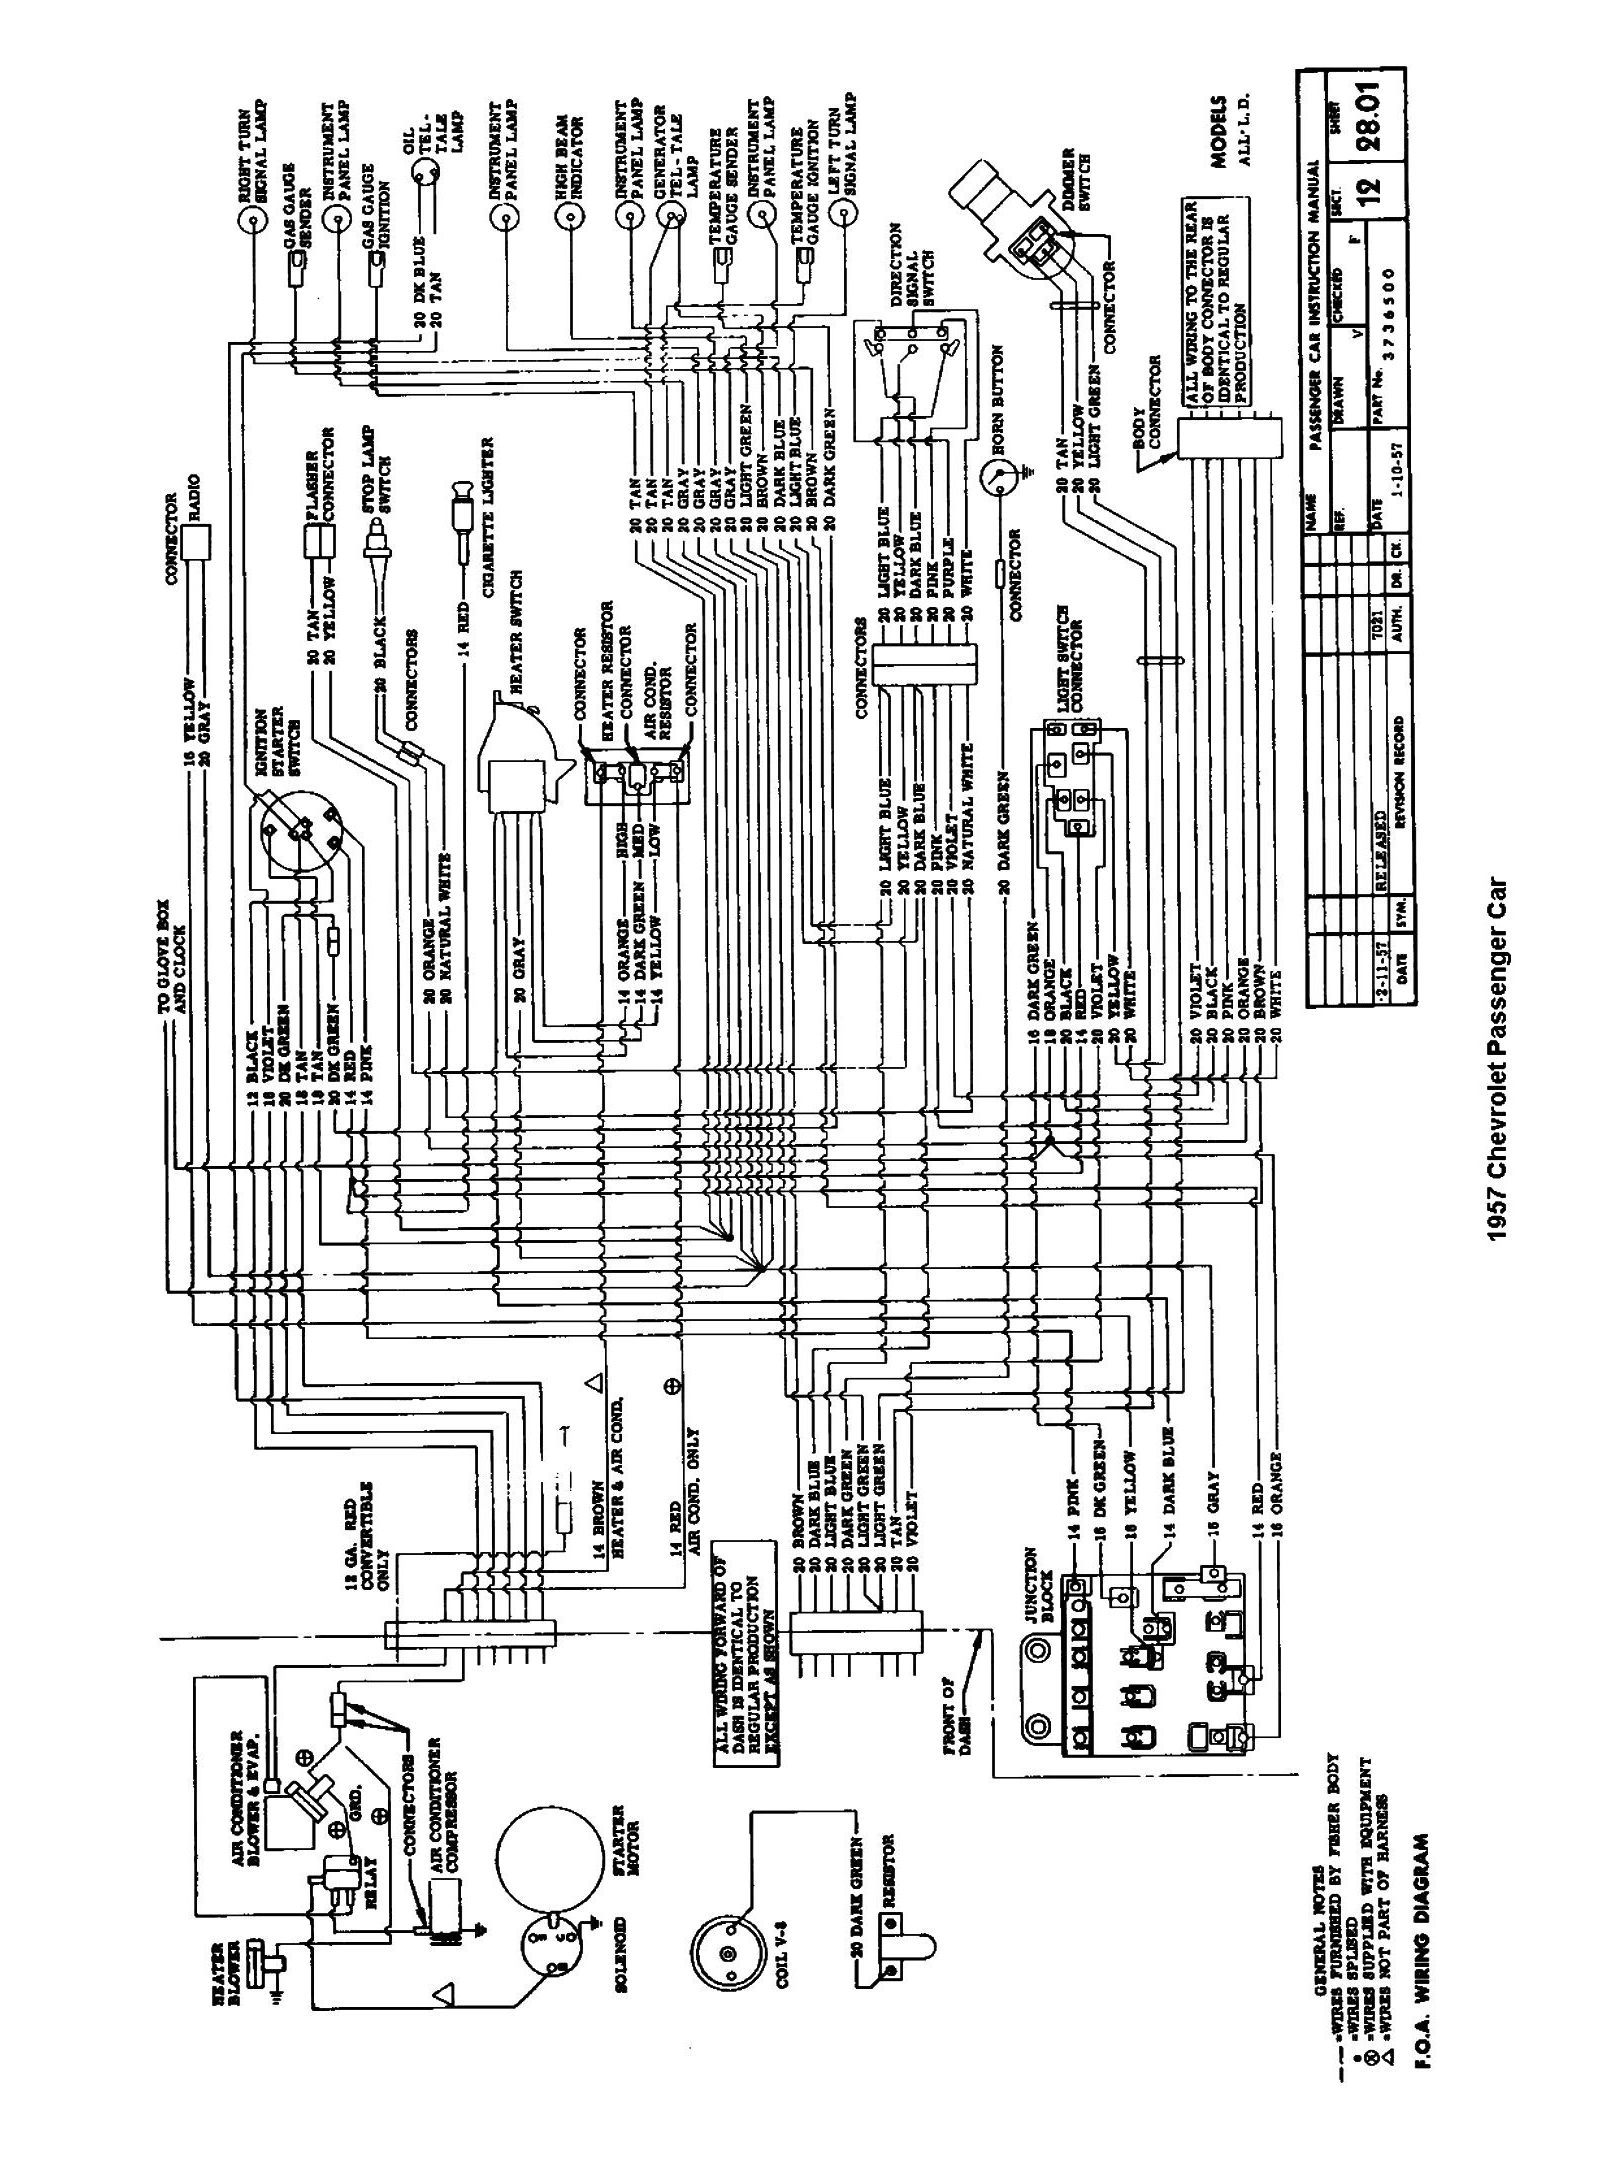 Chevy Wiring Diagrams 1957 Chevy Heater Switch Wiring Diagram 1957 Chevy  Wiring Diagram